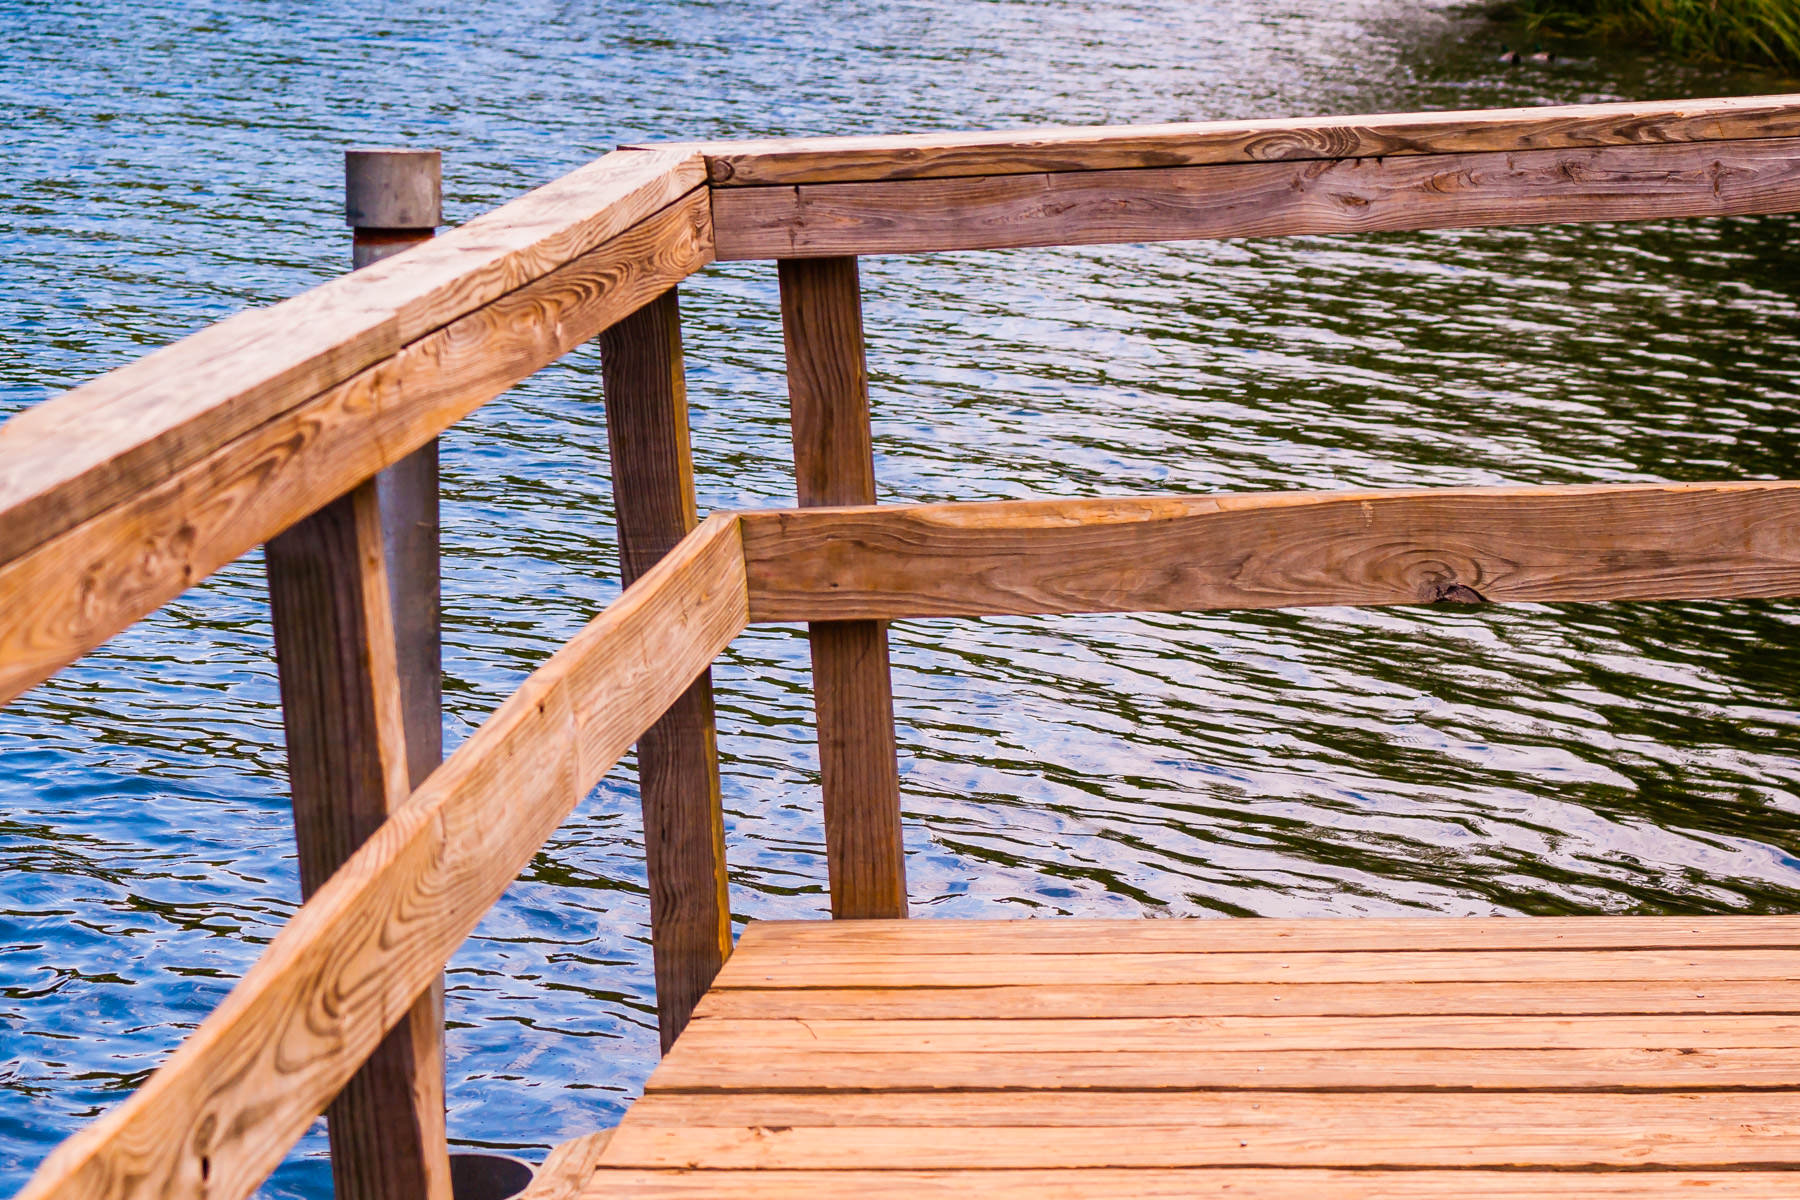 An off-kilter wooden pier at Tyler State Park, Texas.